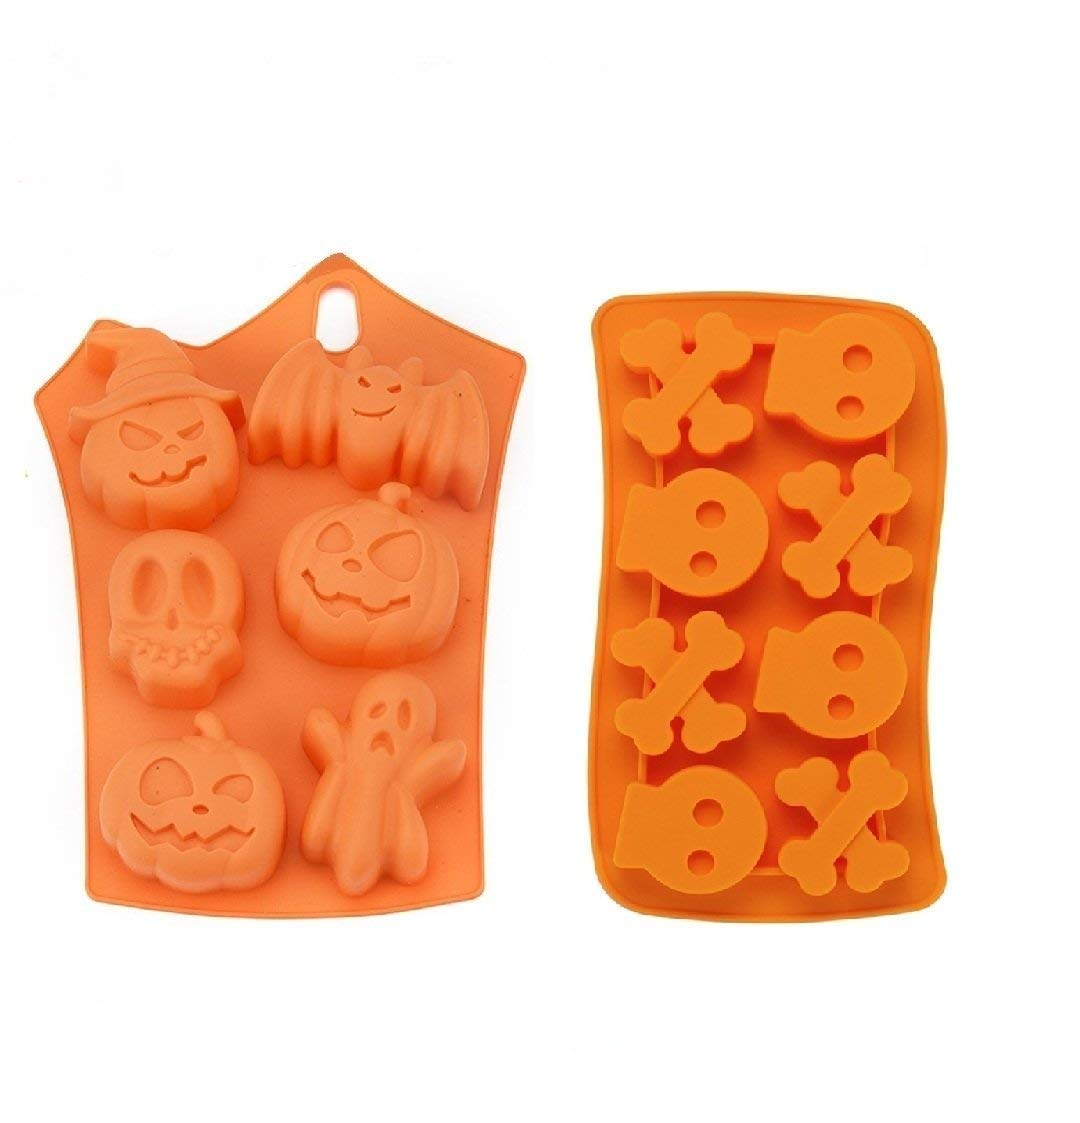 Colybecation Set of 2 Silicone Halloween Candy/Ice / Cake/Chocolate Molds - Party Supplies with Pumpkins Skulls Crossbones Ghosts Bats Random Color